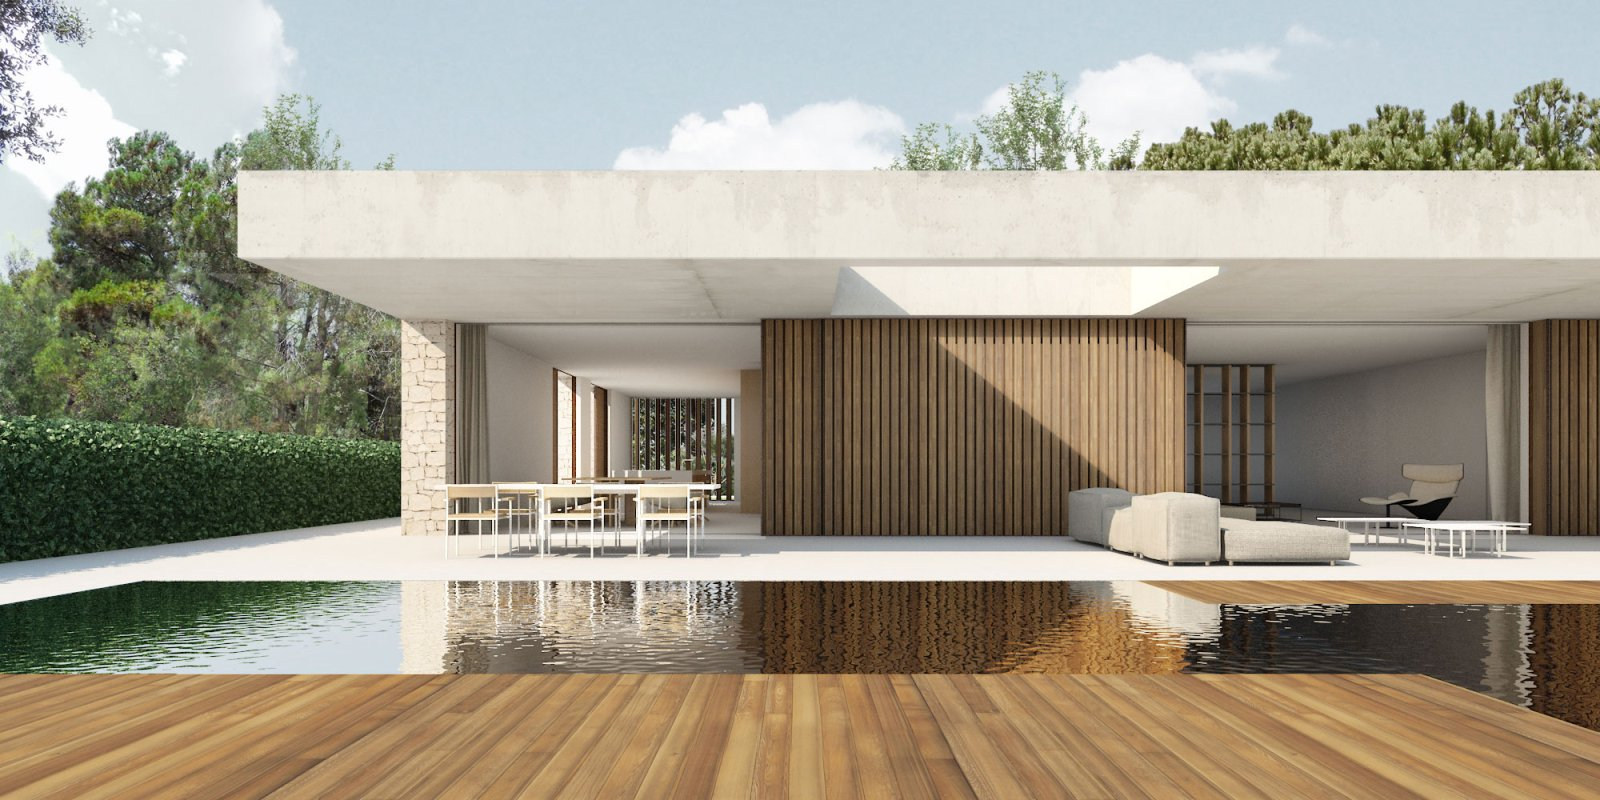 The house in la canada by ramon esteve estudio 06 - Ramon esteve estudio ...